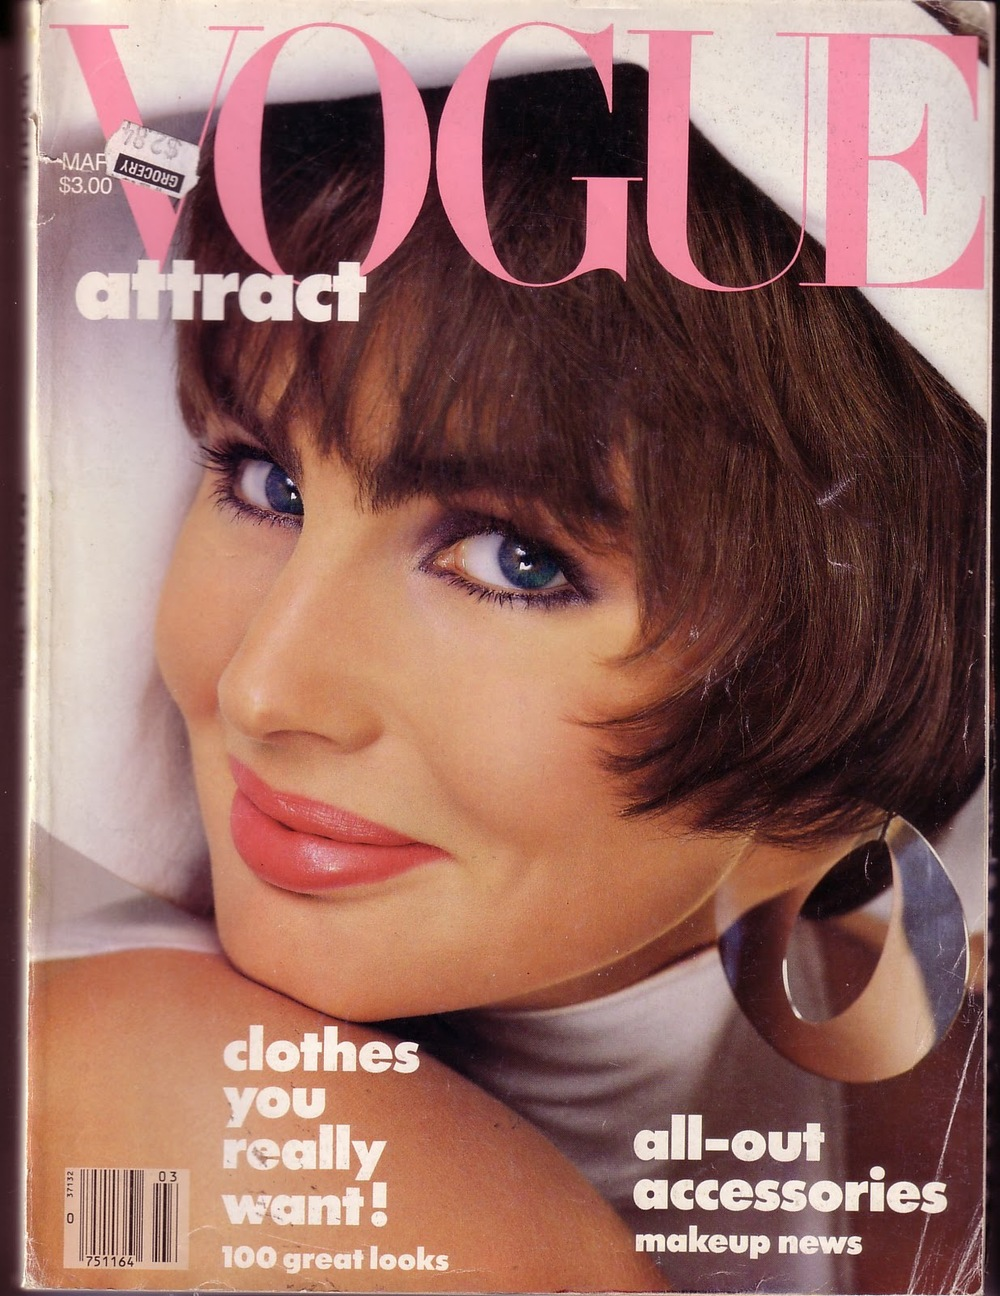 vogue cover marcxh 86.jpg